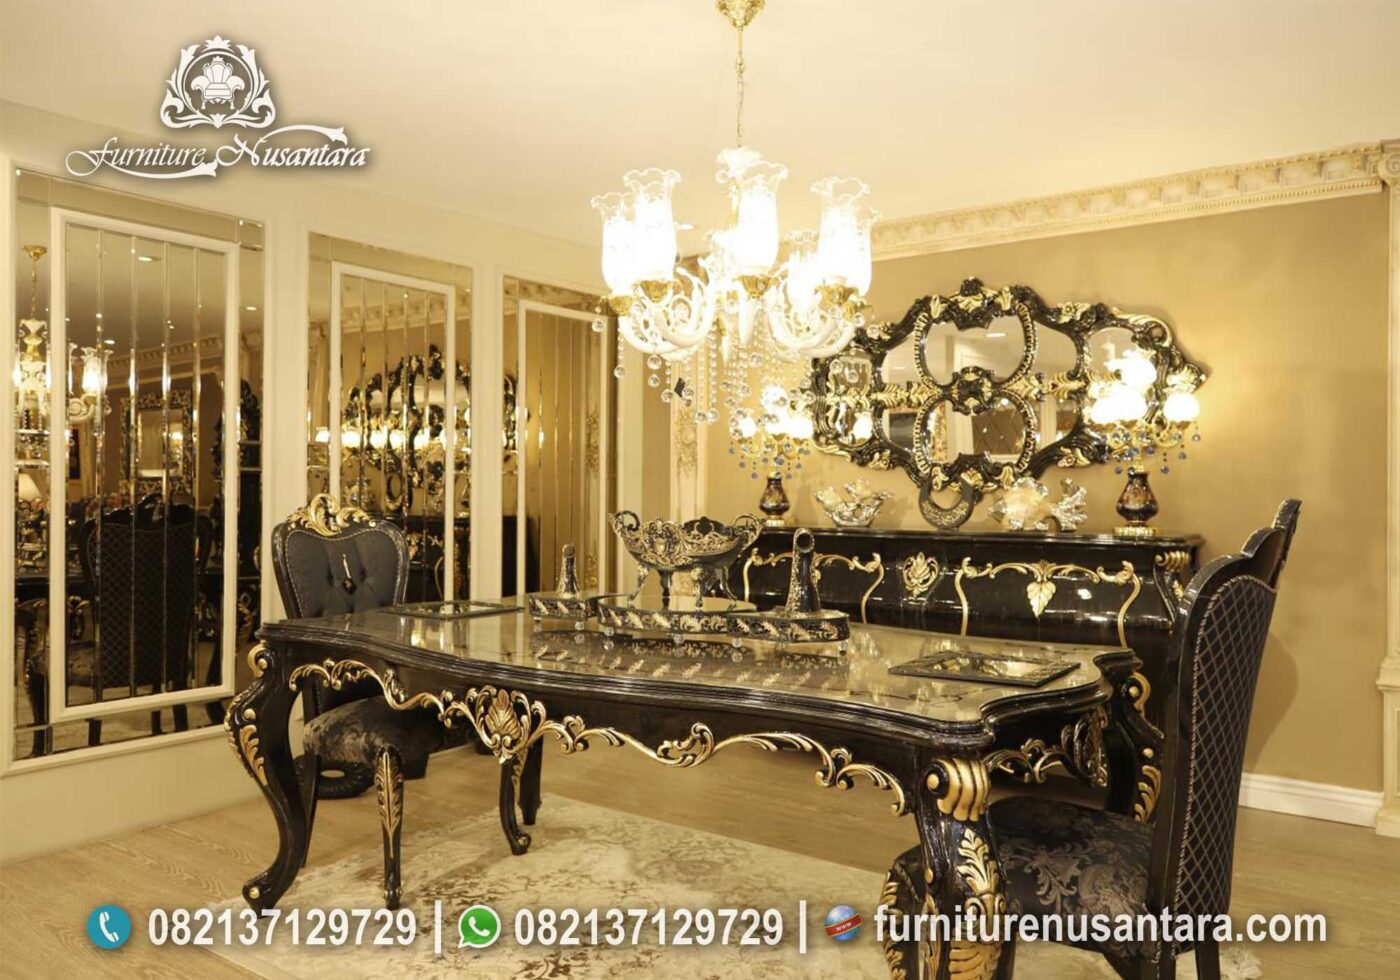 Meja Makan Klasik Black Colour Terbaik MM-25, Furniture Nusantara